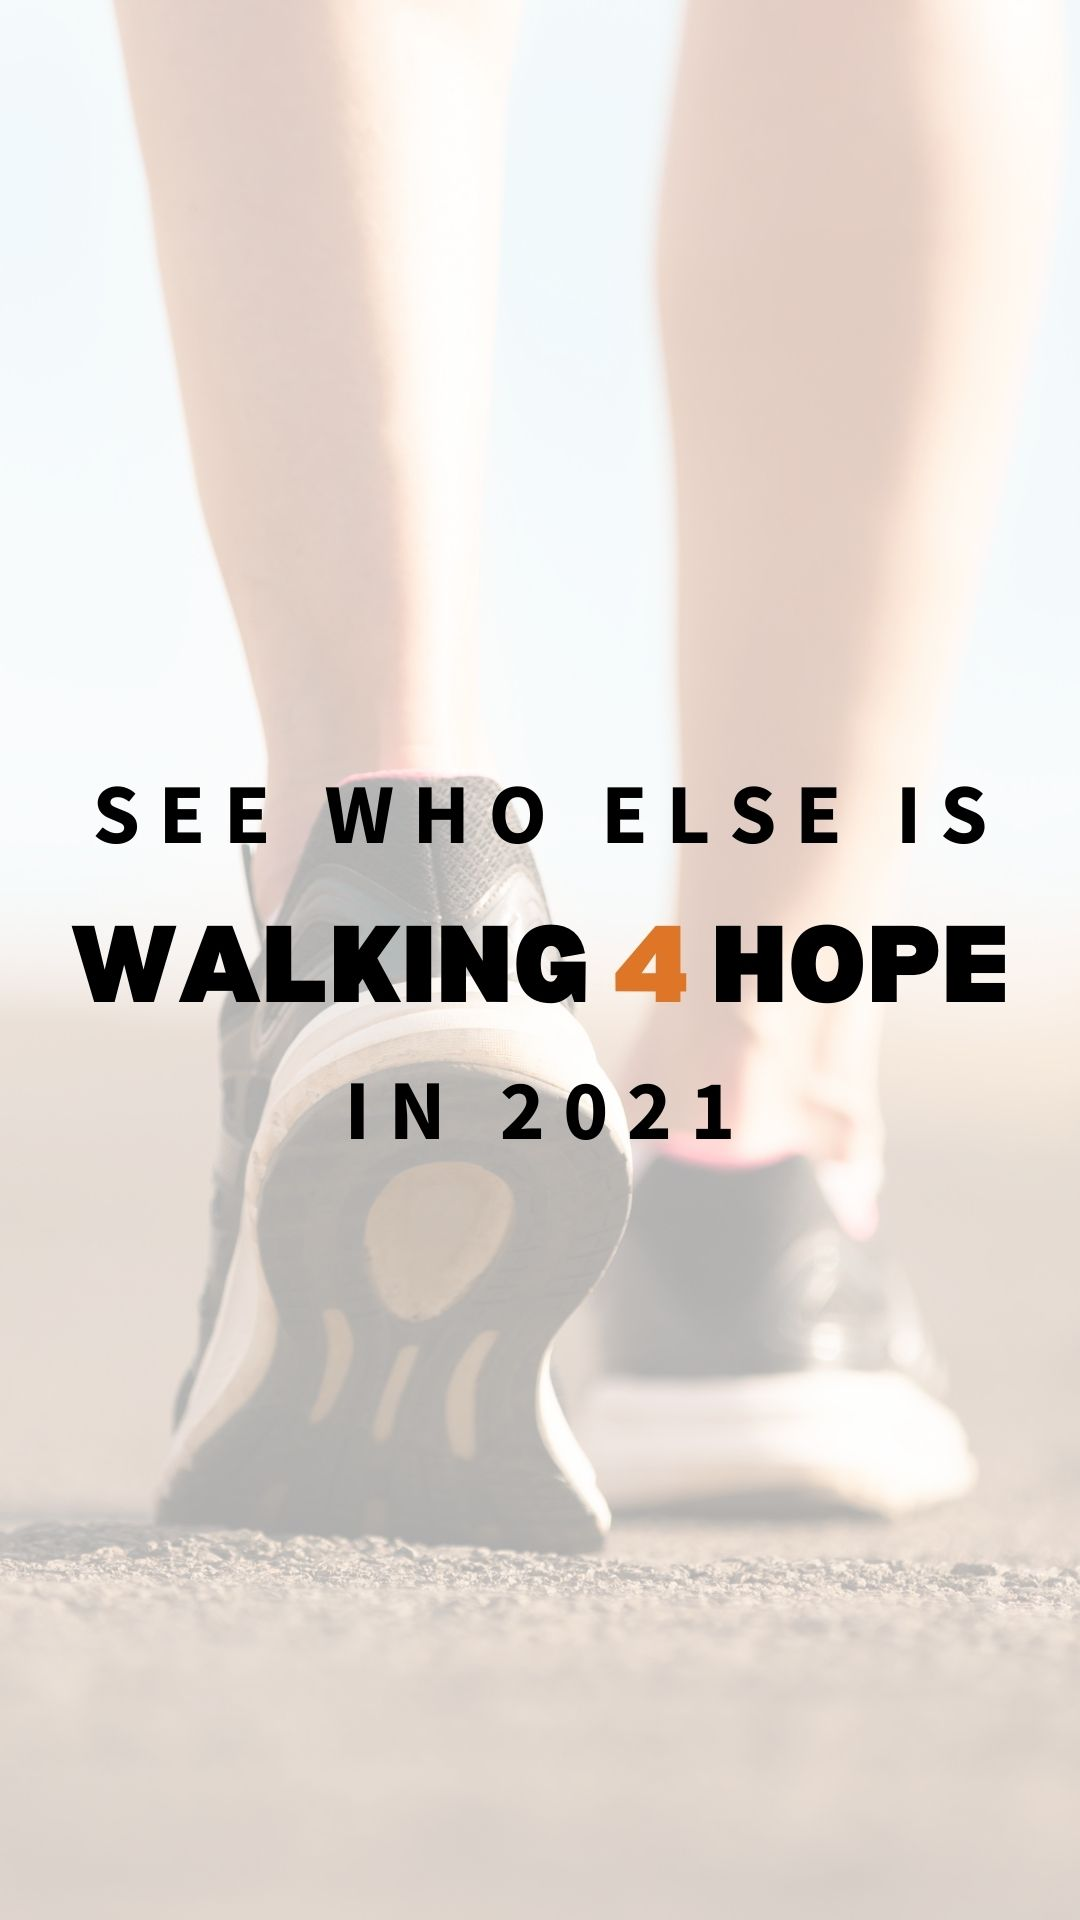 See who else is walking 4 hope in 2021